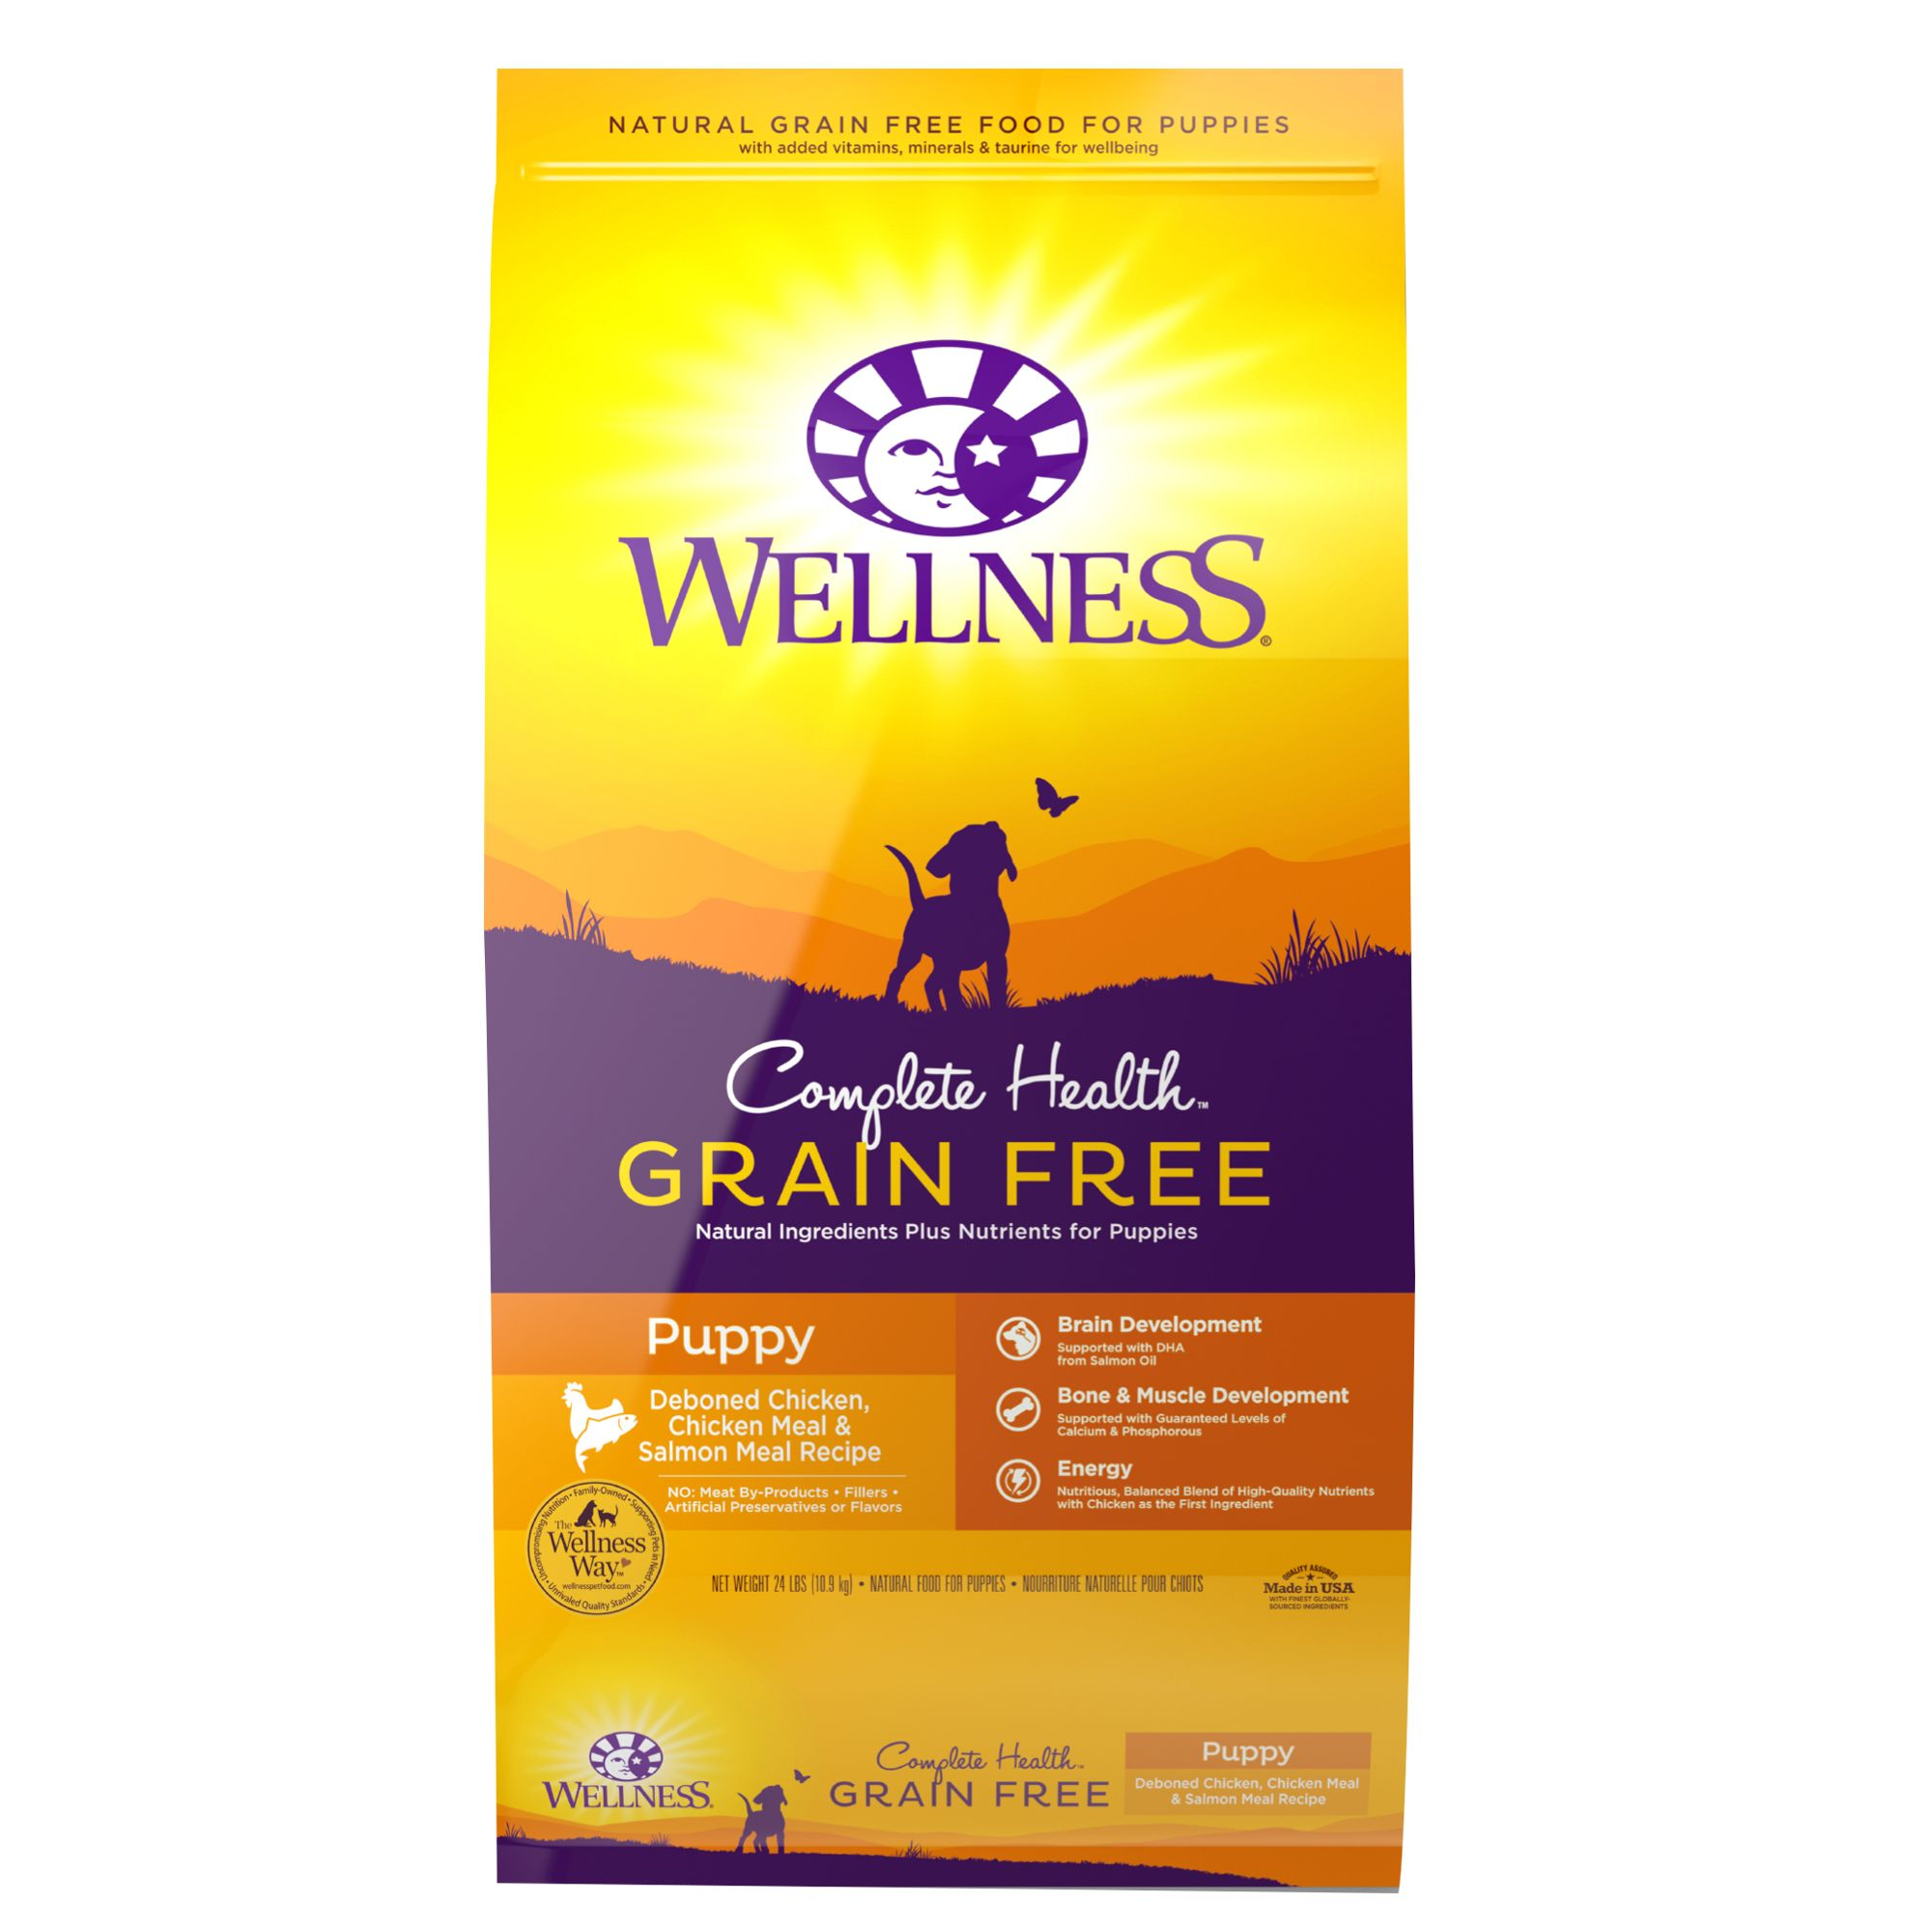 Wellness Complete Health Puppy Food - Natural, Grain Free, Chicken, Chicken and Salmon Meal size: 24 Lb 5264995